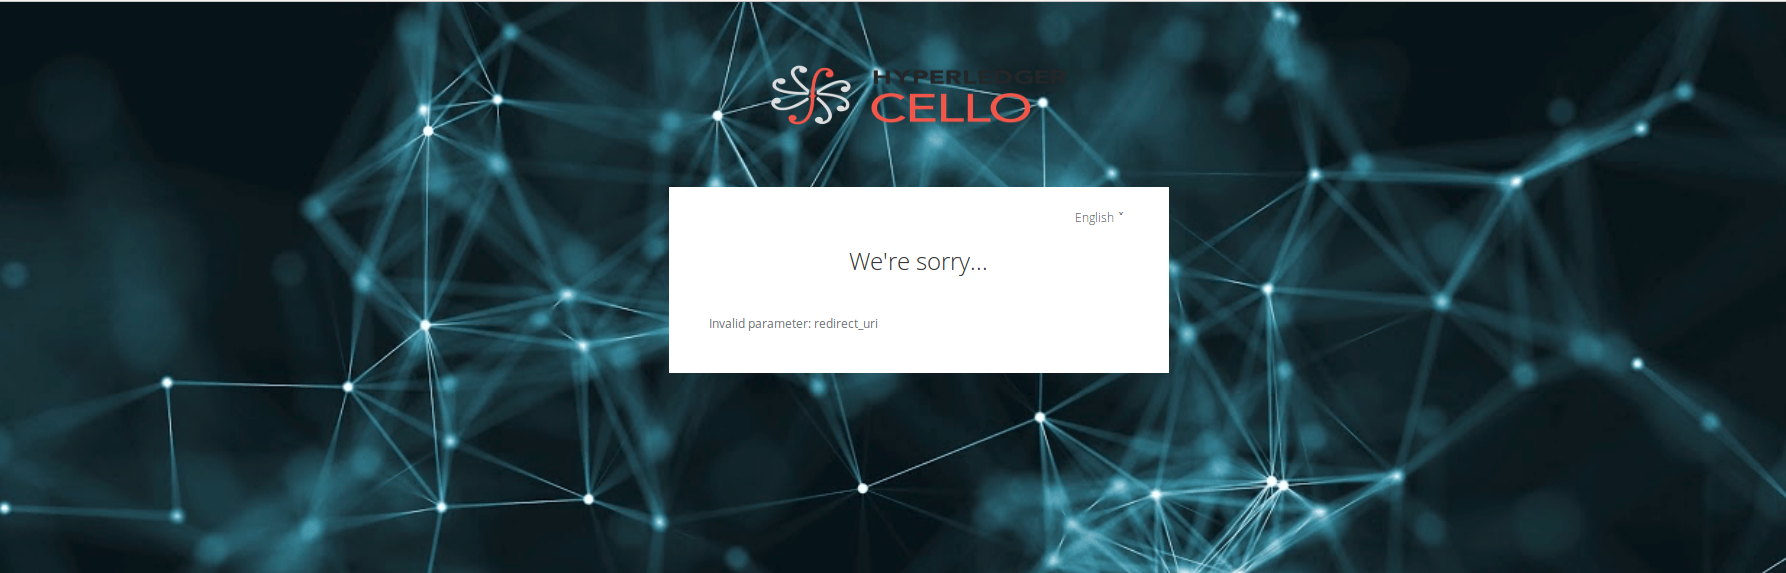 CE-580] Cello Chains are not getting created, always showing